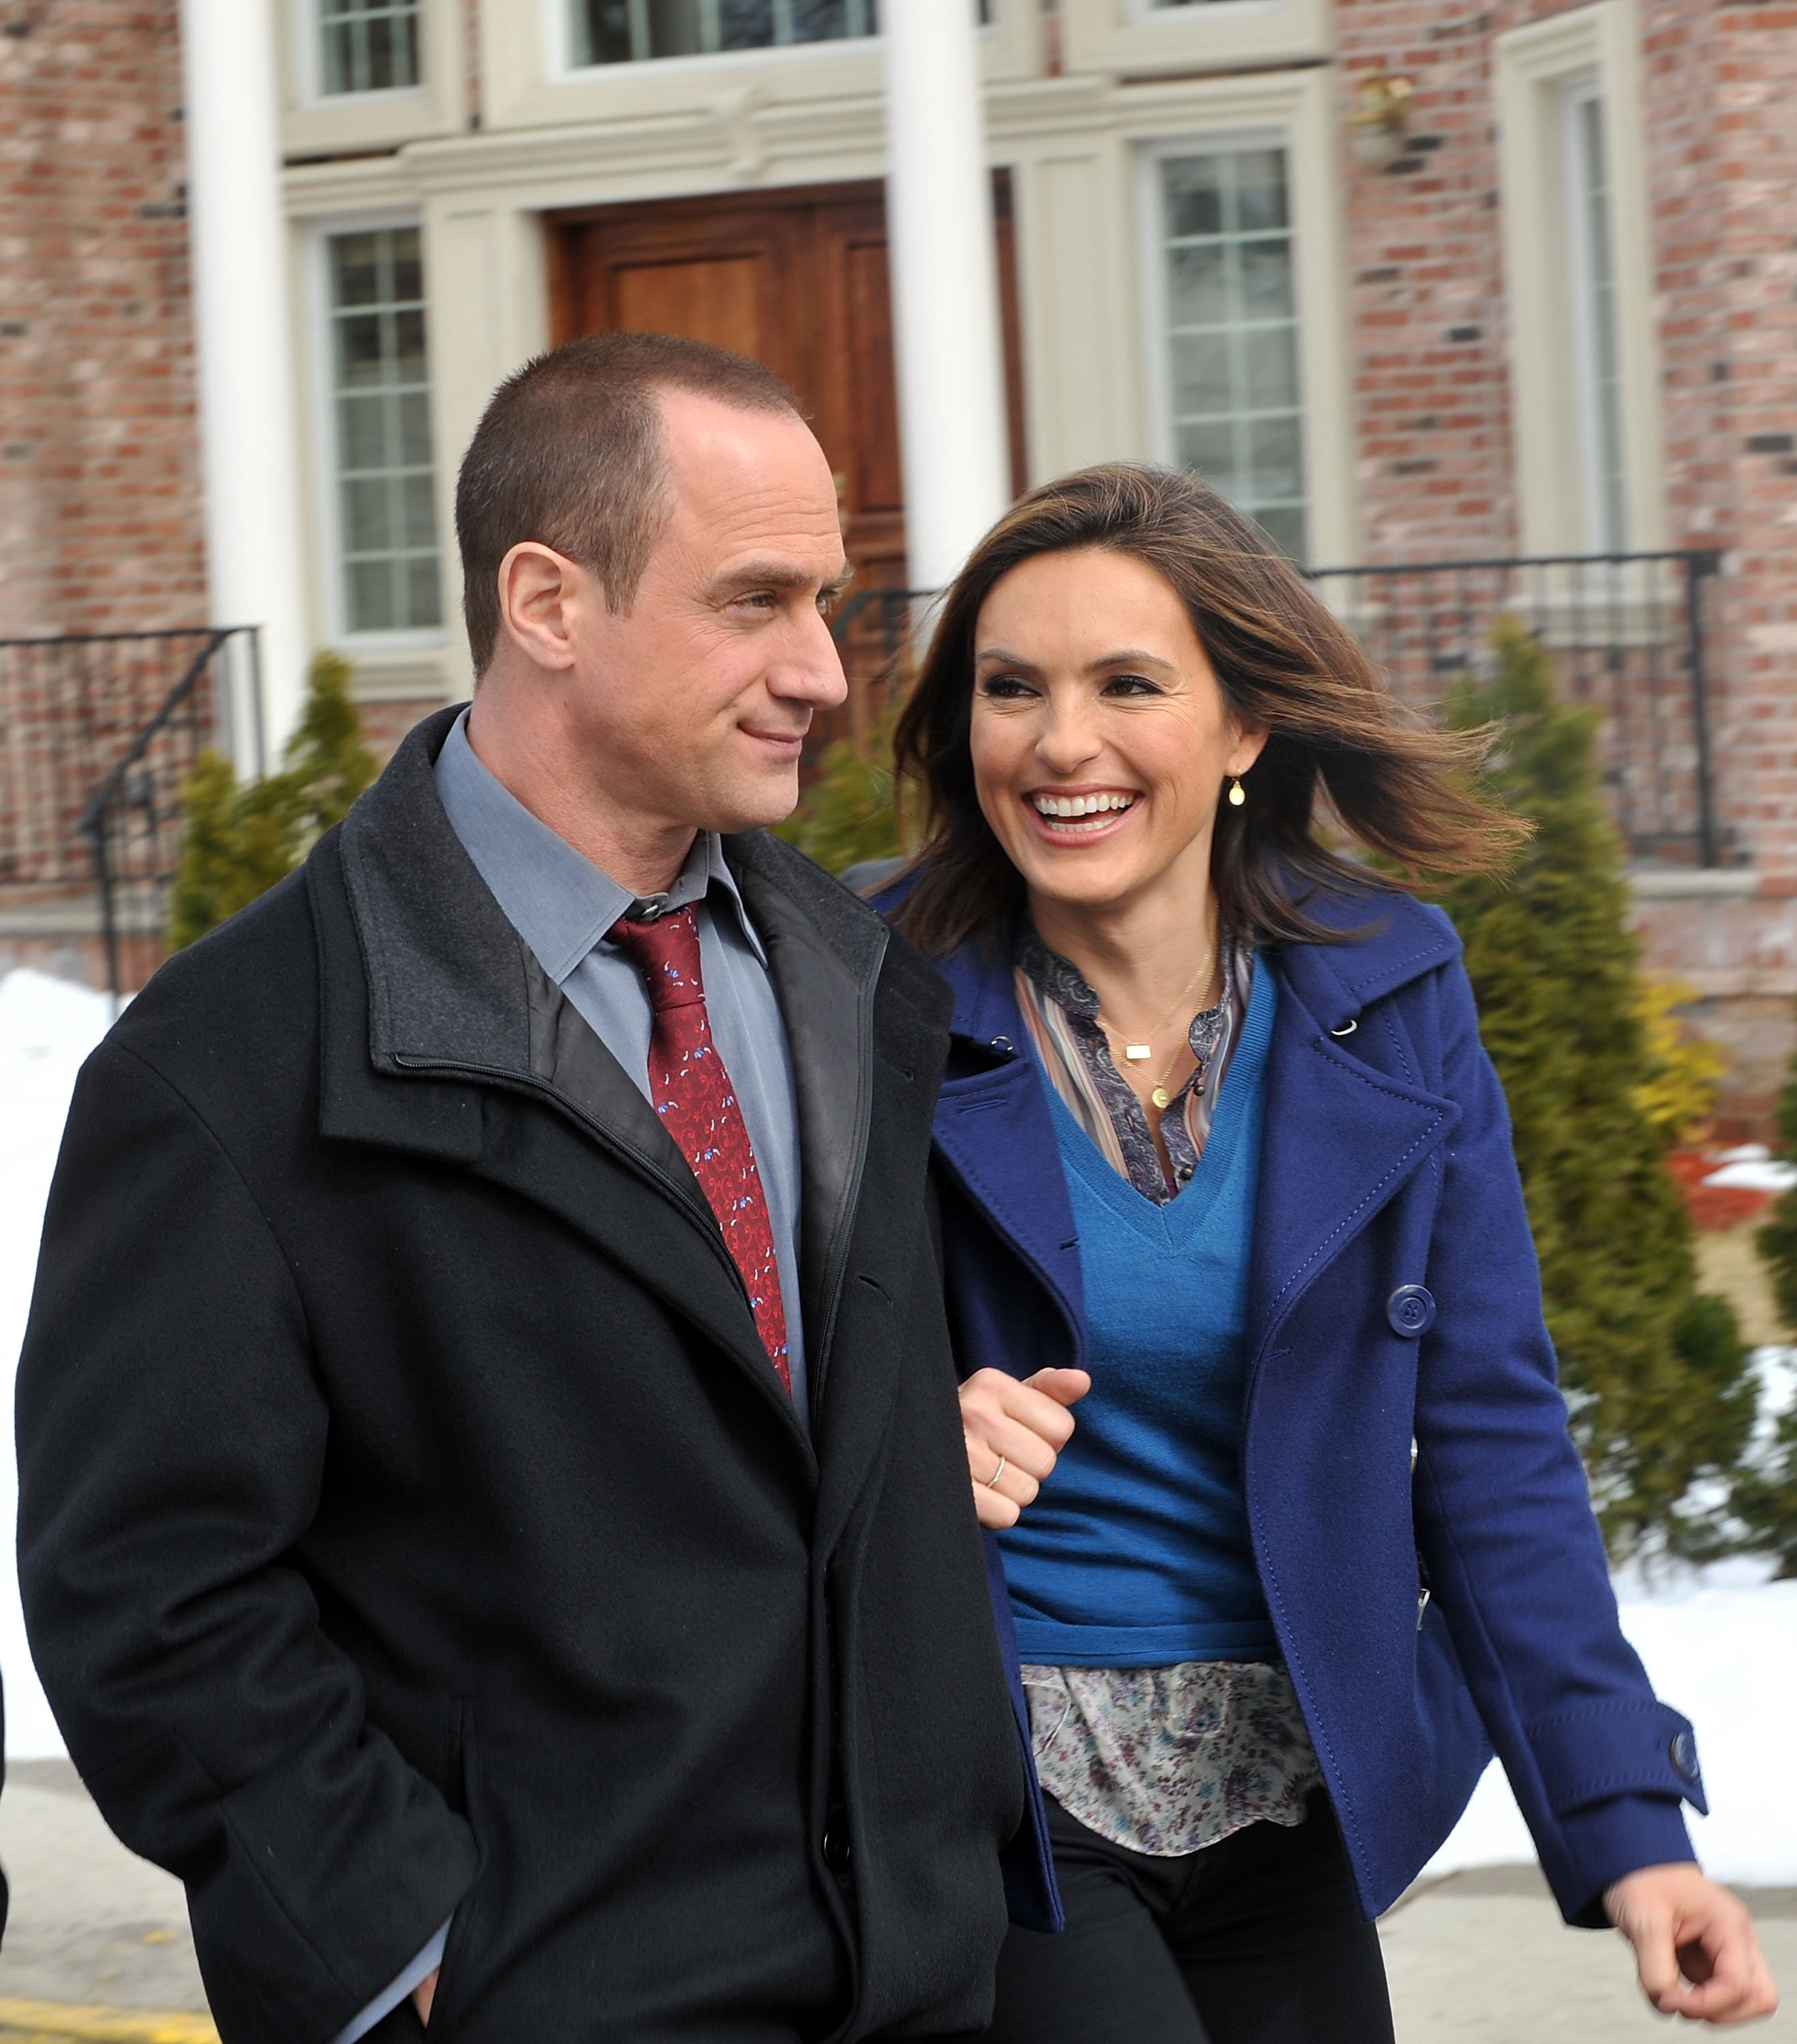 """Christopher Meloni and Mariska Hargitay on location for """"Law & Order: SVU"""" on the streets of Fort Lee, NJ on March 4, 2010 